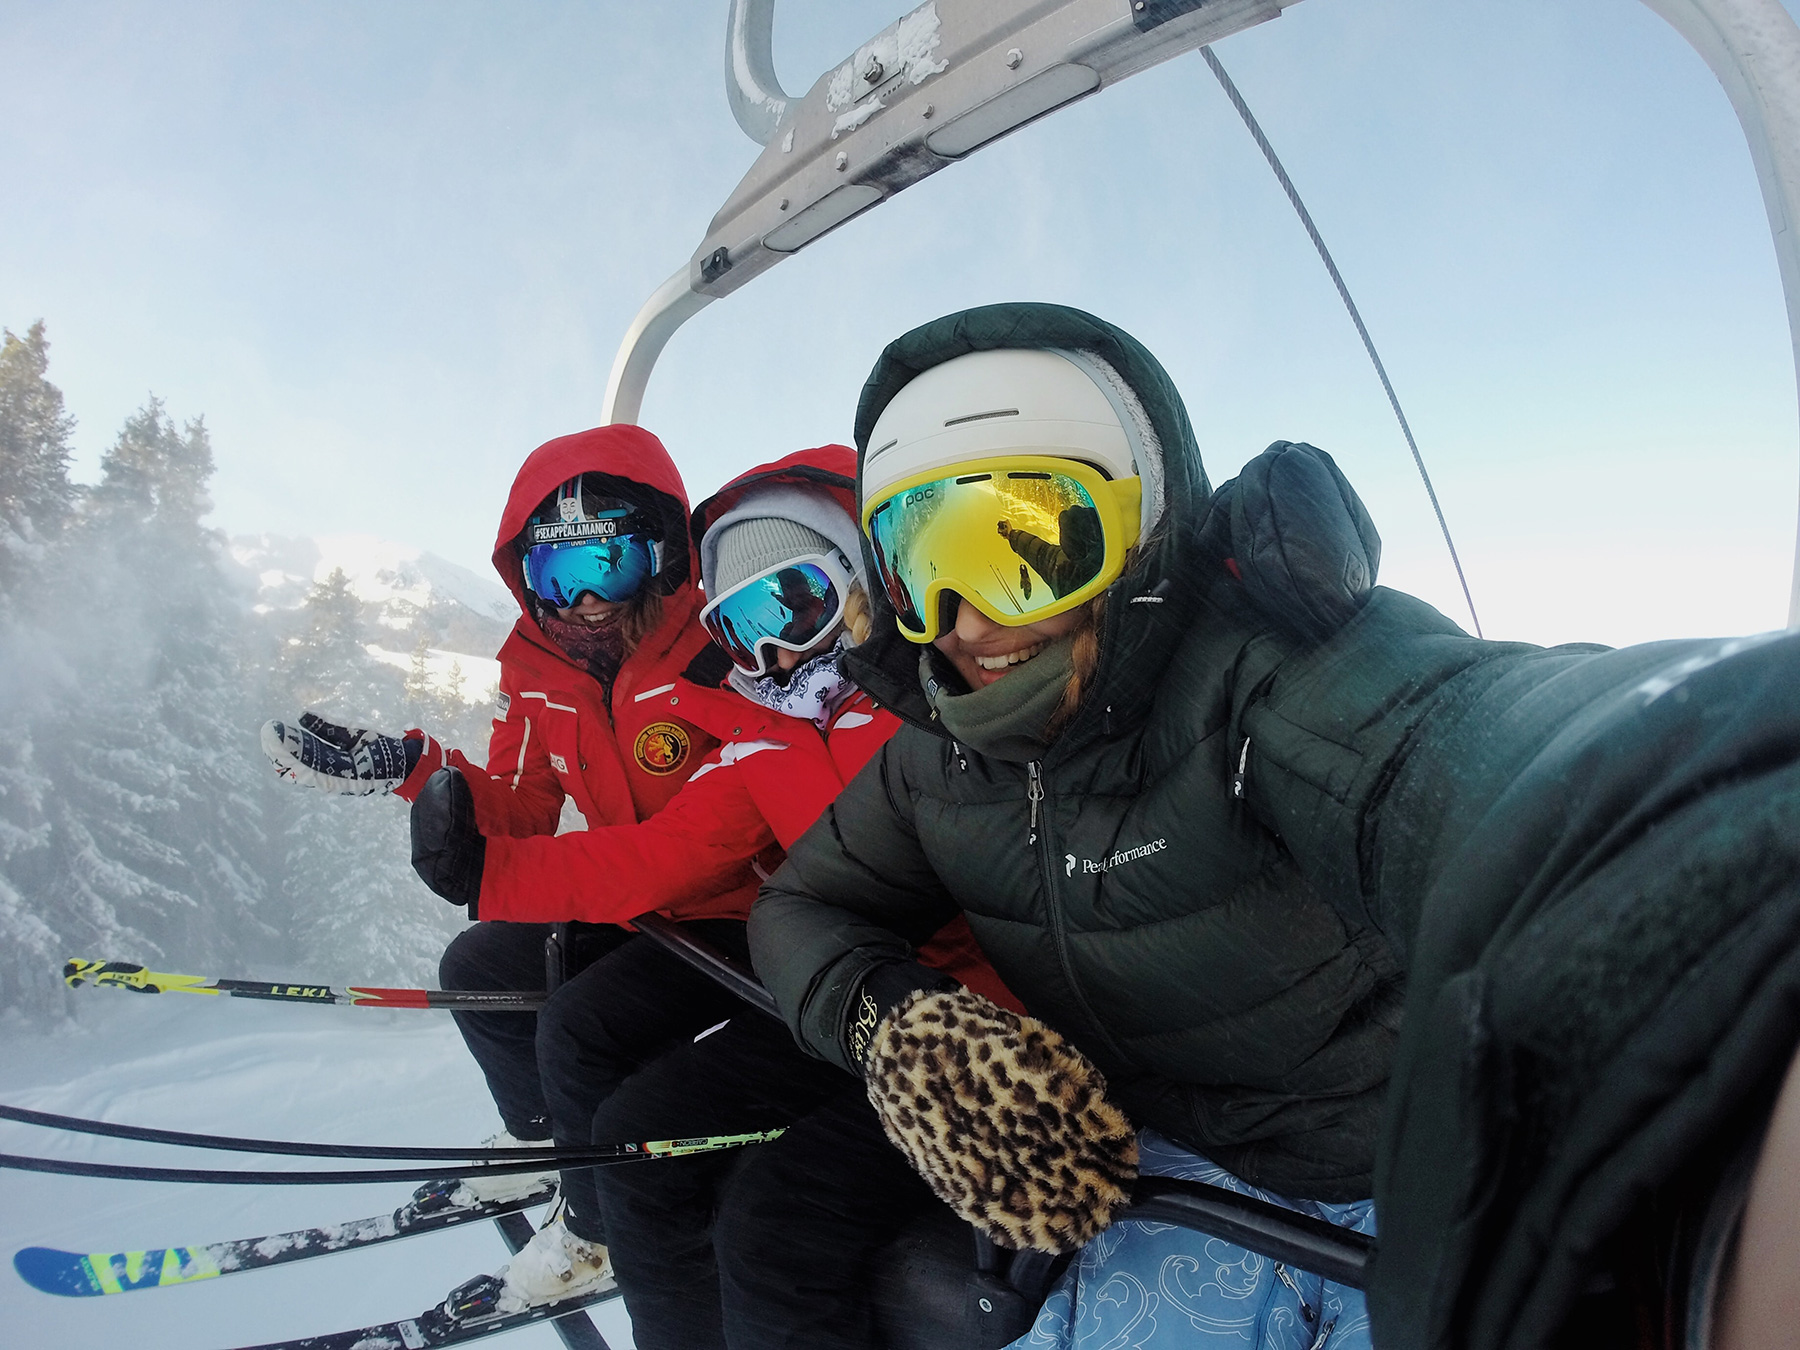 Three skiers taking a selfie while on the lift.